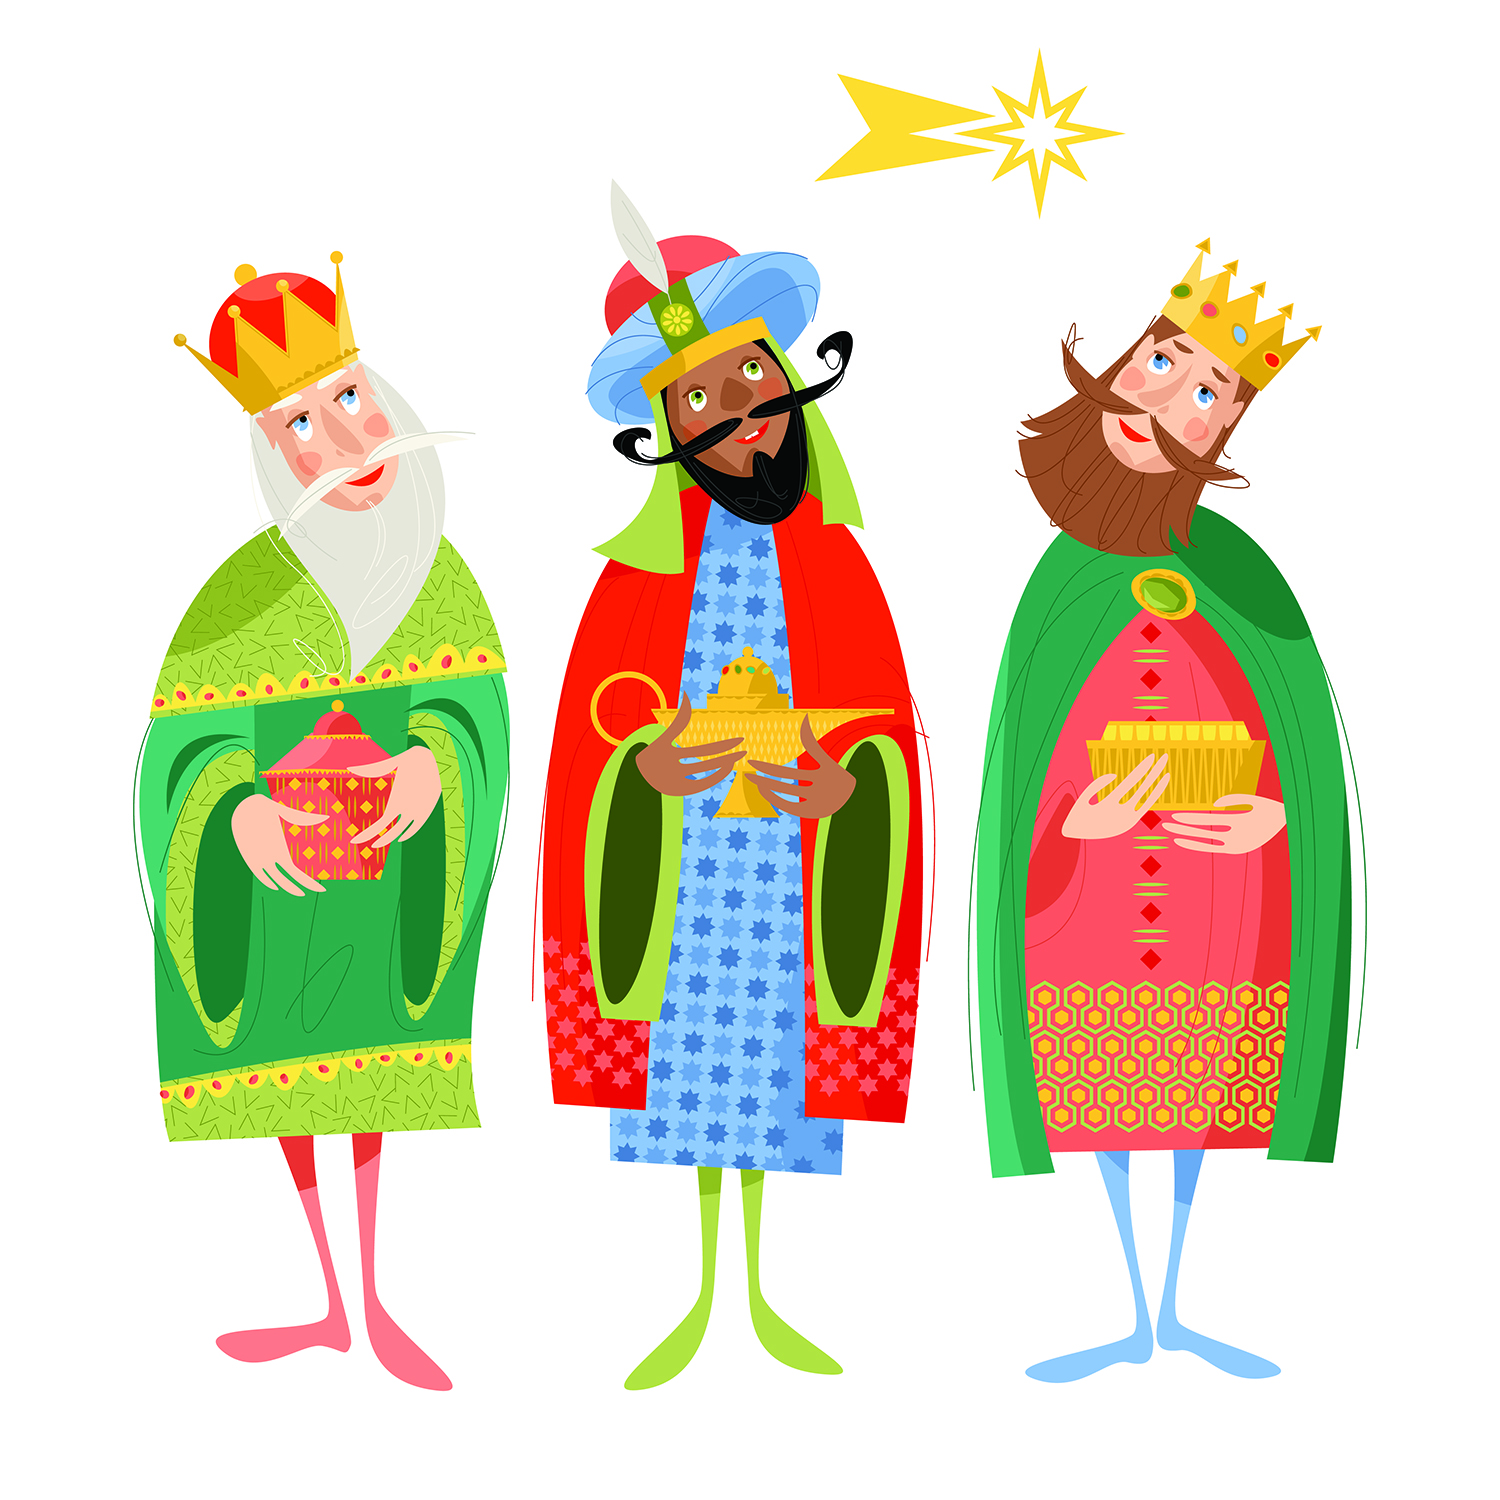 We Three Kings.